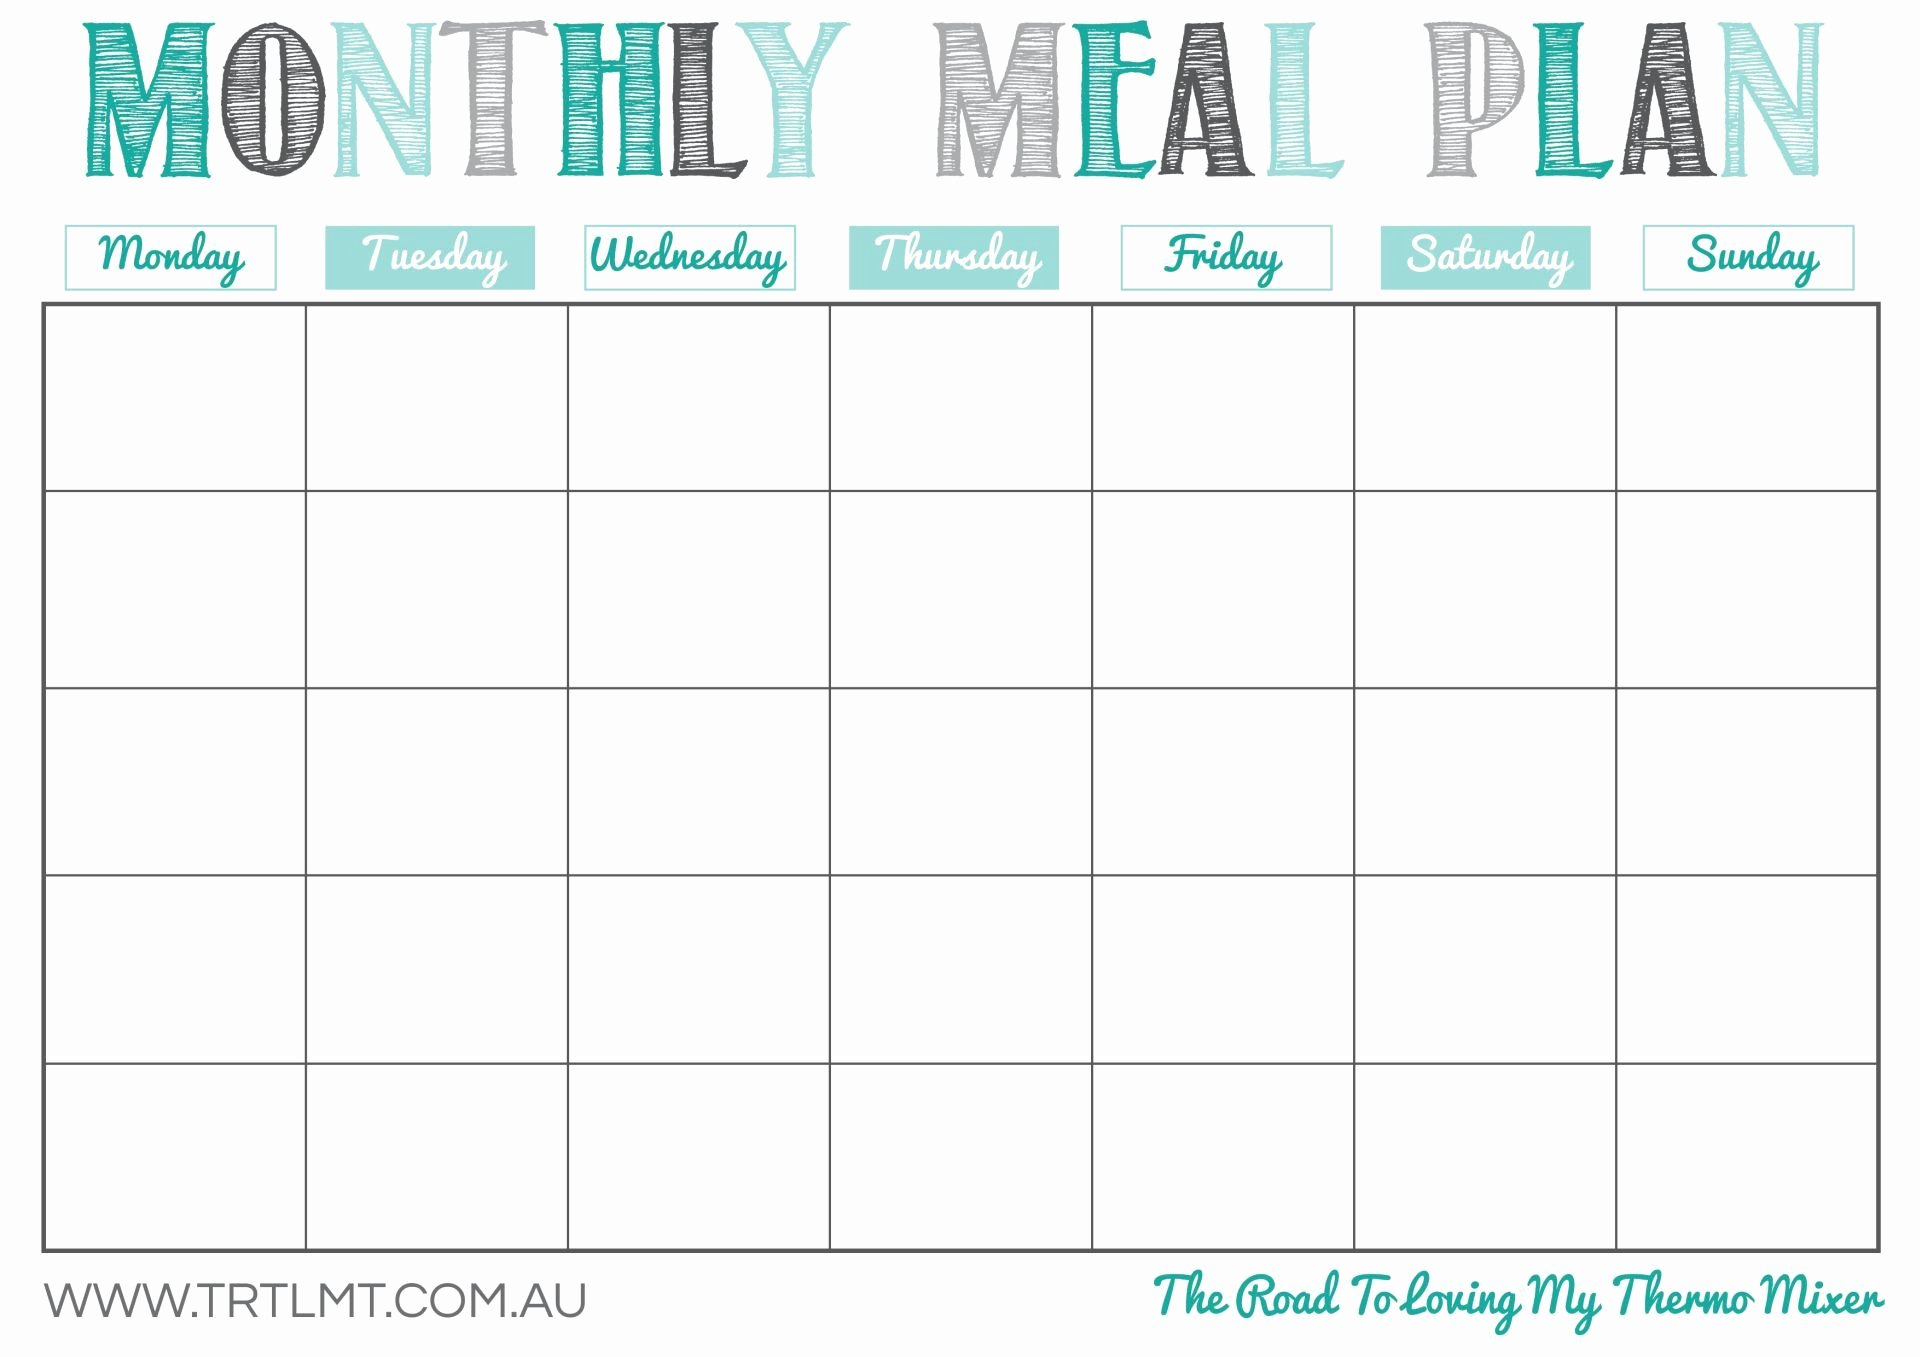 Monthly Meal Plan Template Inspirational Monthly Meal Plan 2 Fb Crafts